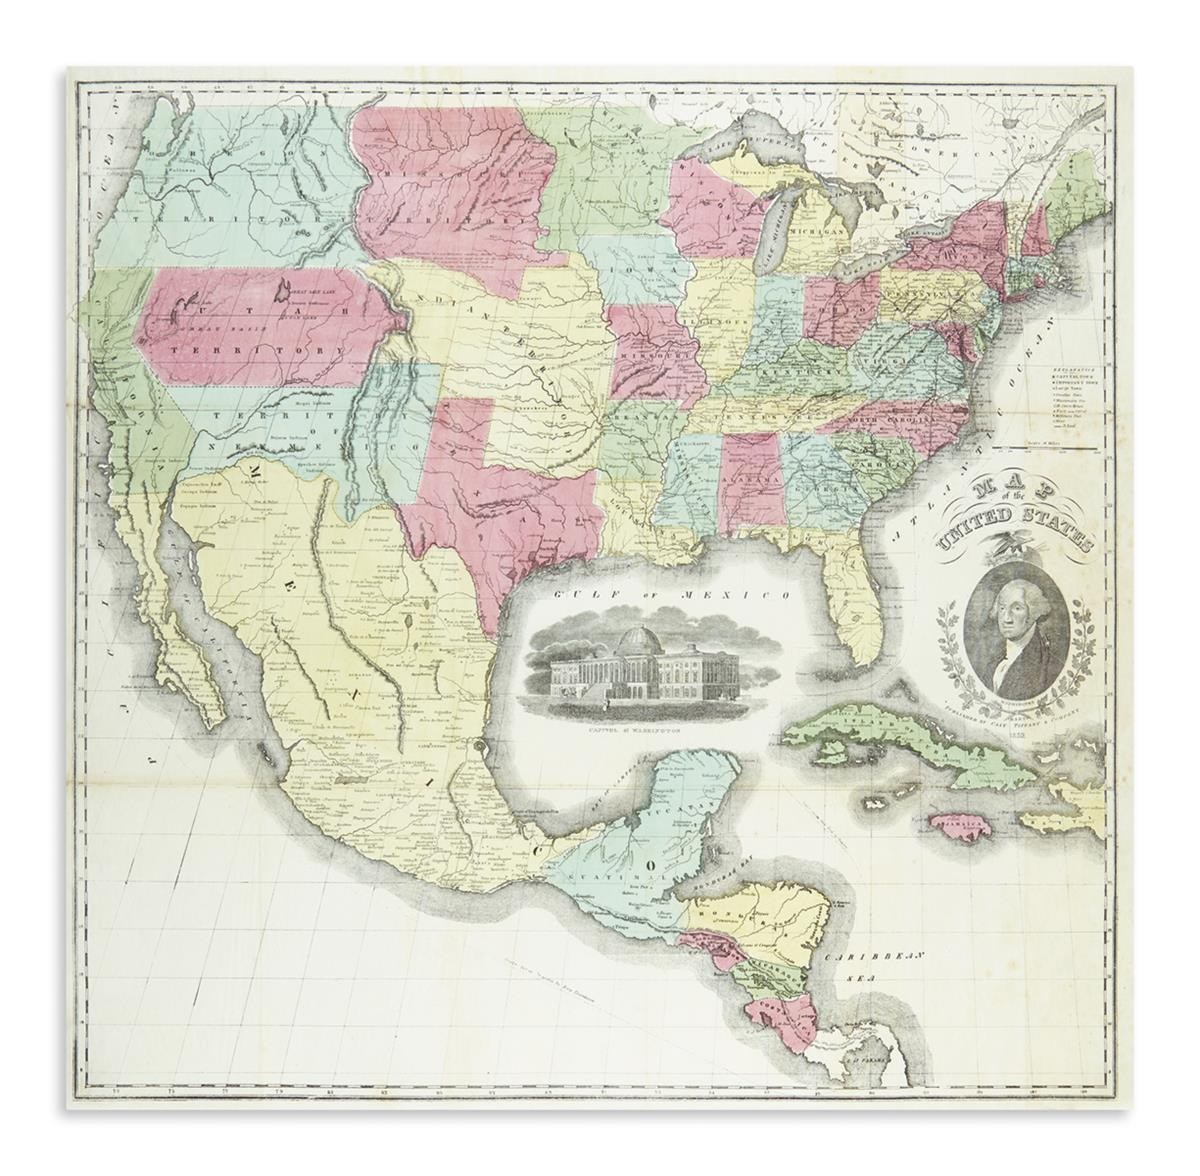 CASE, TIFFANY & COMPANY. Map of the United States.